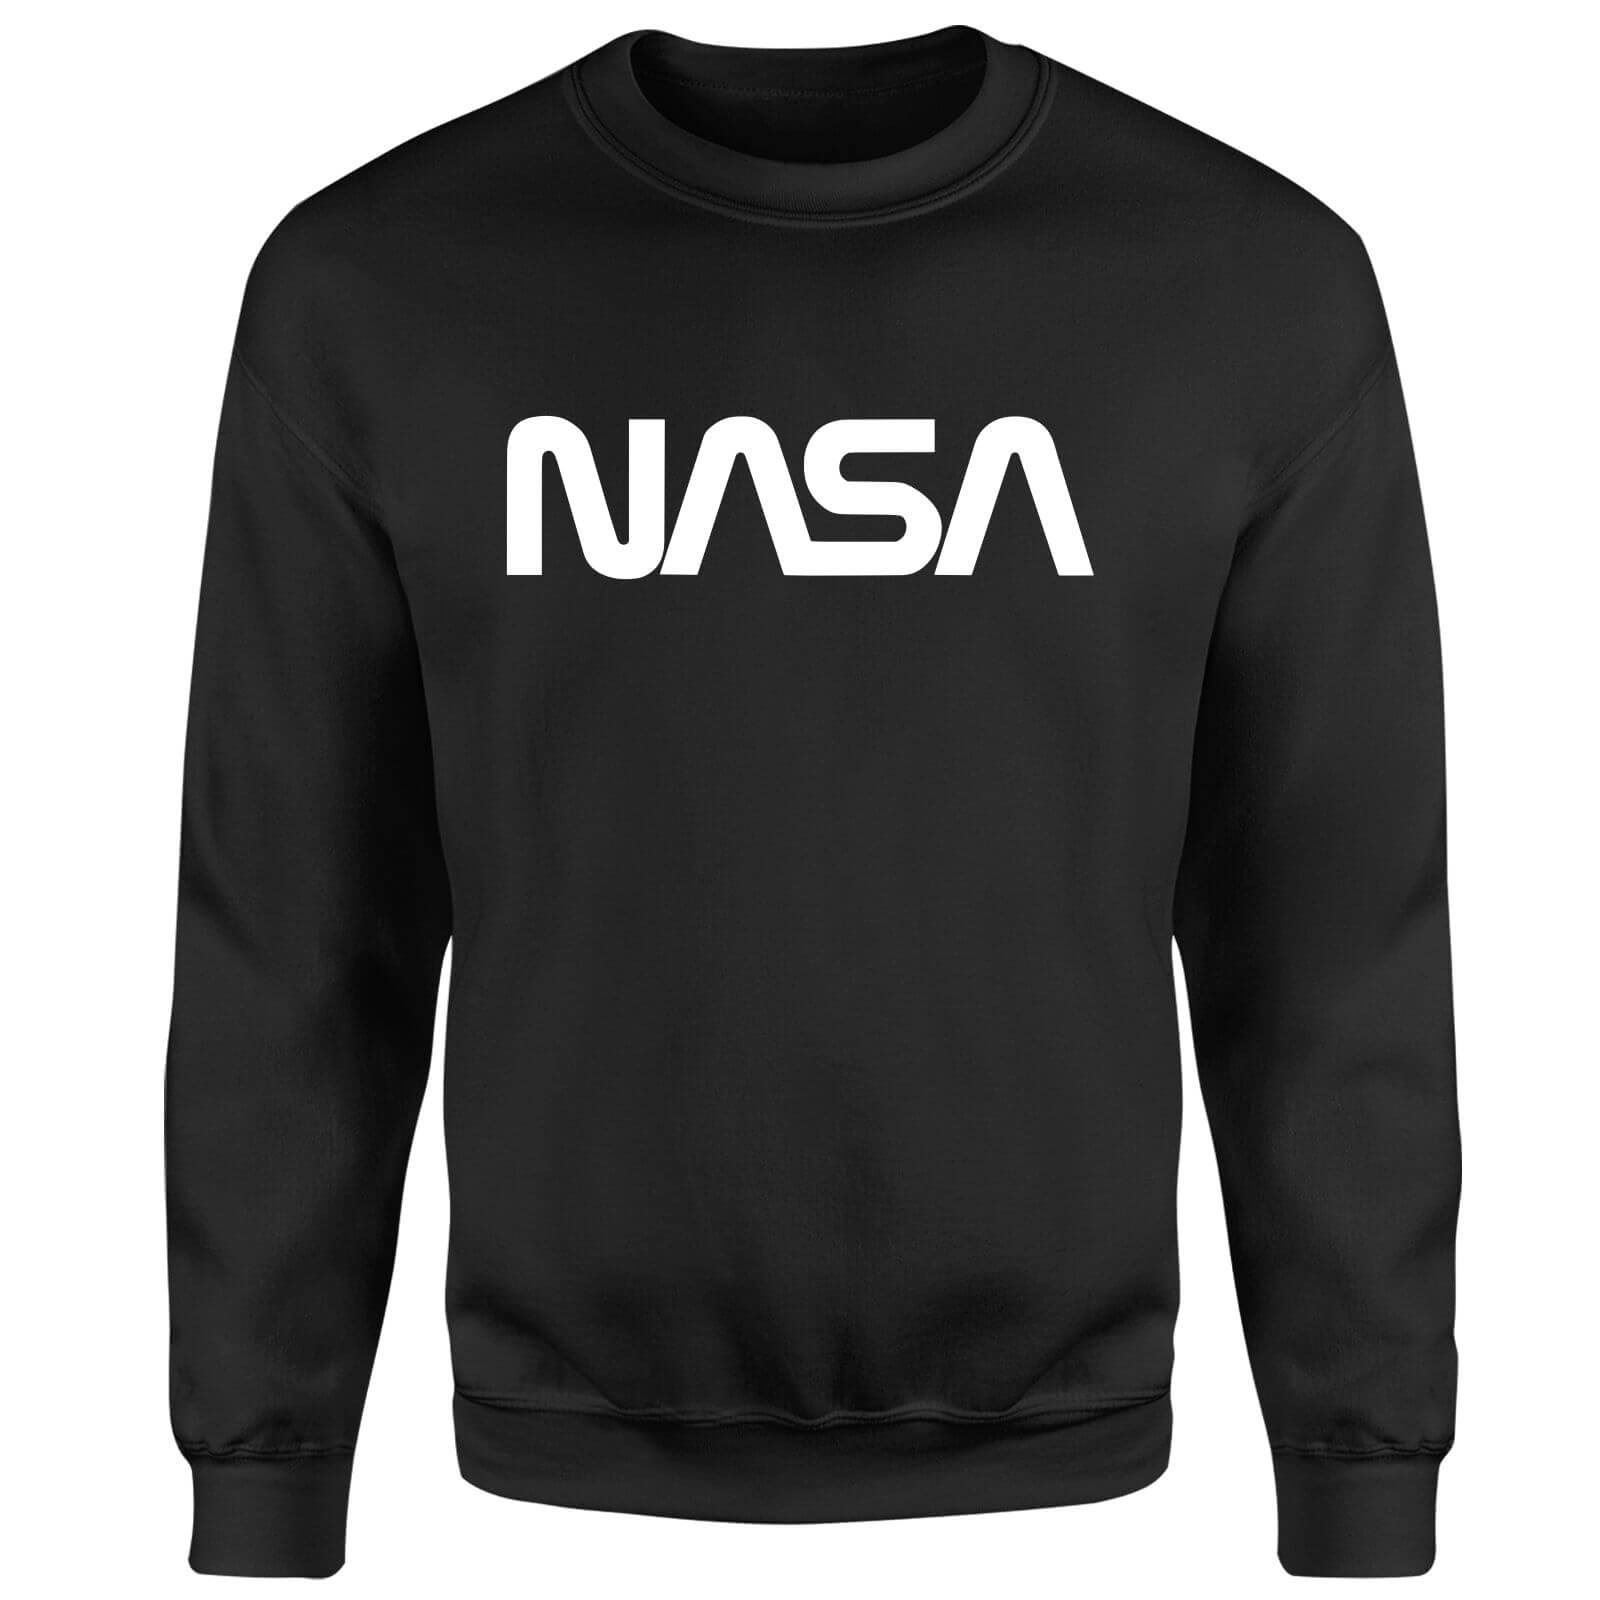 NASA Worm White Logotype Sweatshirt - Black